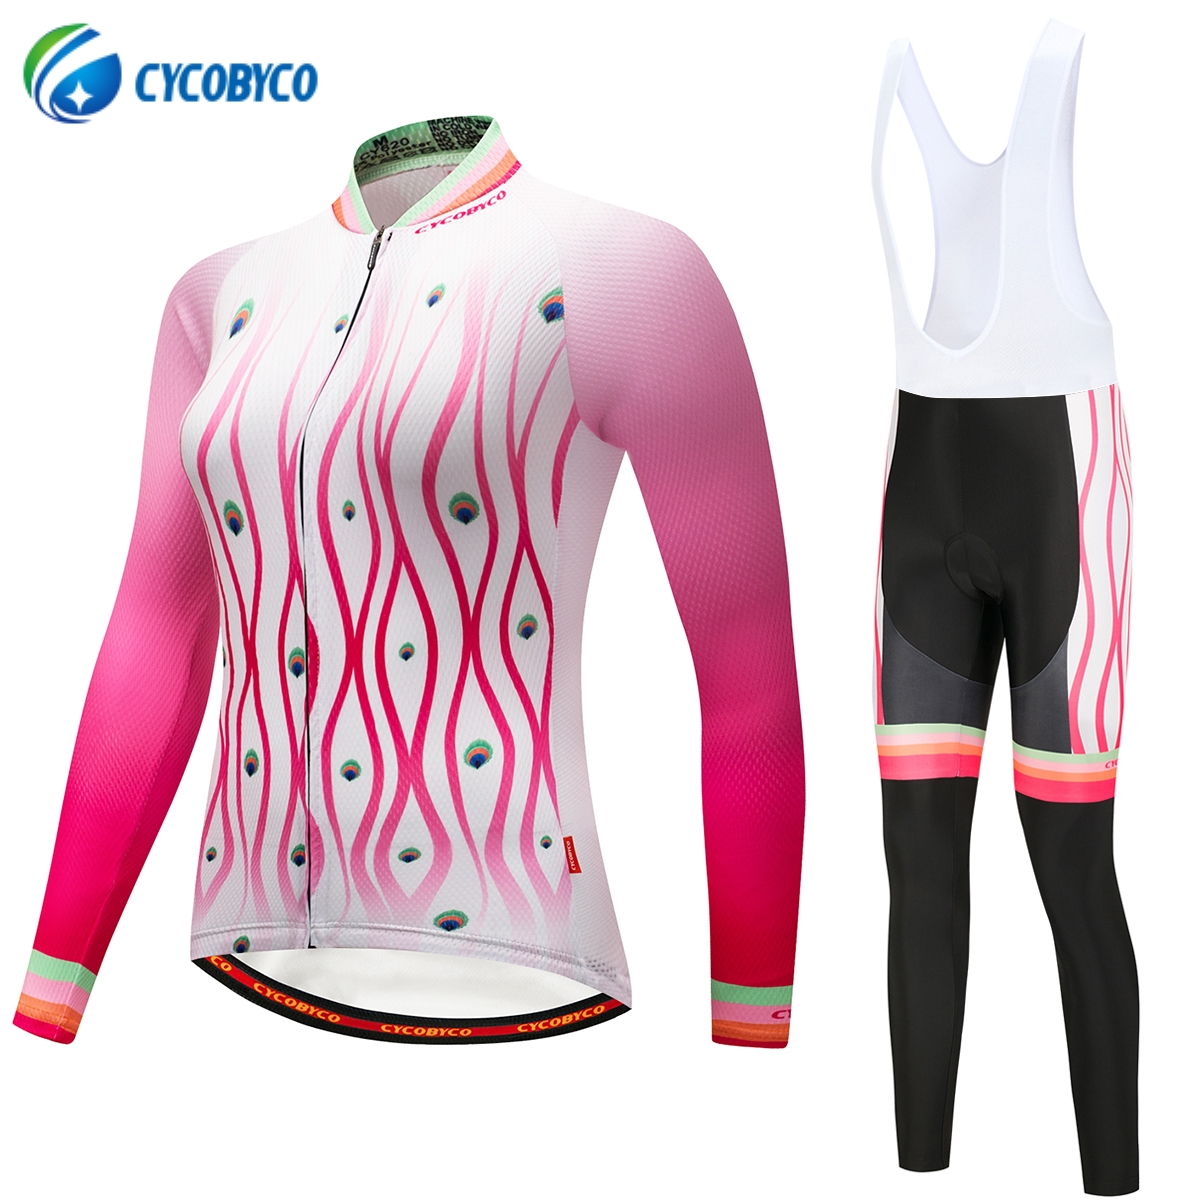 Cycobyco Autumn Womens Cycling Clothing 100% Polyester Bicycle Wear Ropa Ciclismo Cycling Clothes Cycling Jersey Set Peacock